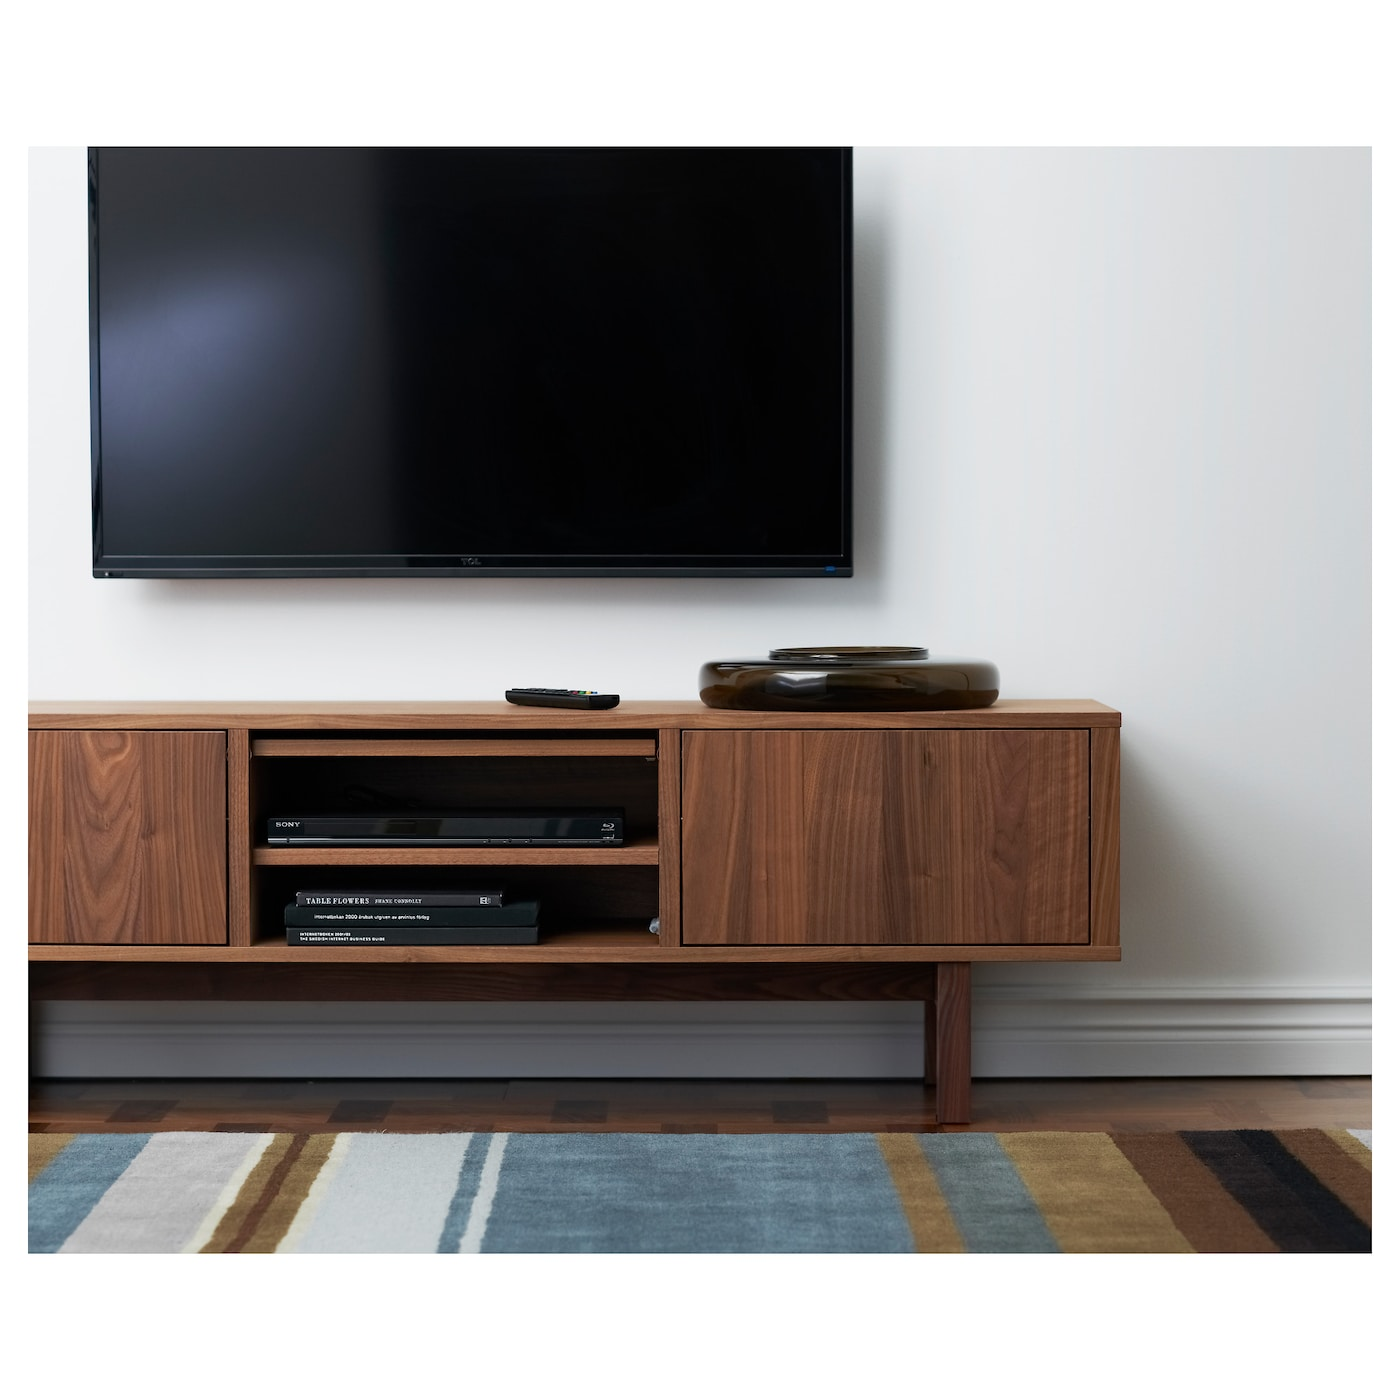 Stockholm tv bench walnut veneer 160 x 40 x 50 cm ikea - Mueble televisor ikea ...